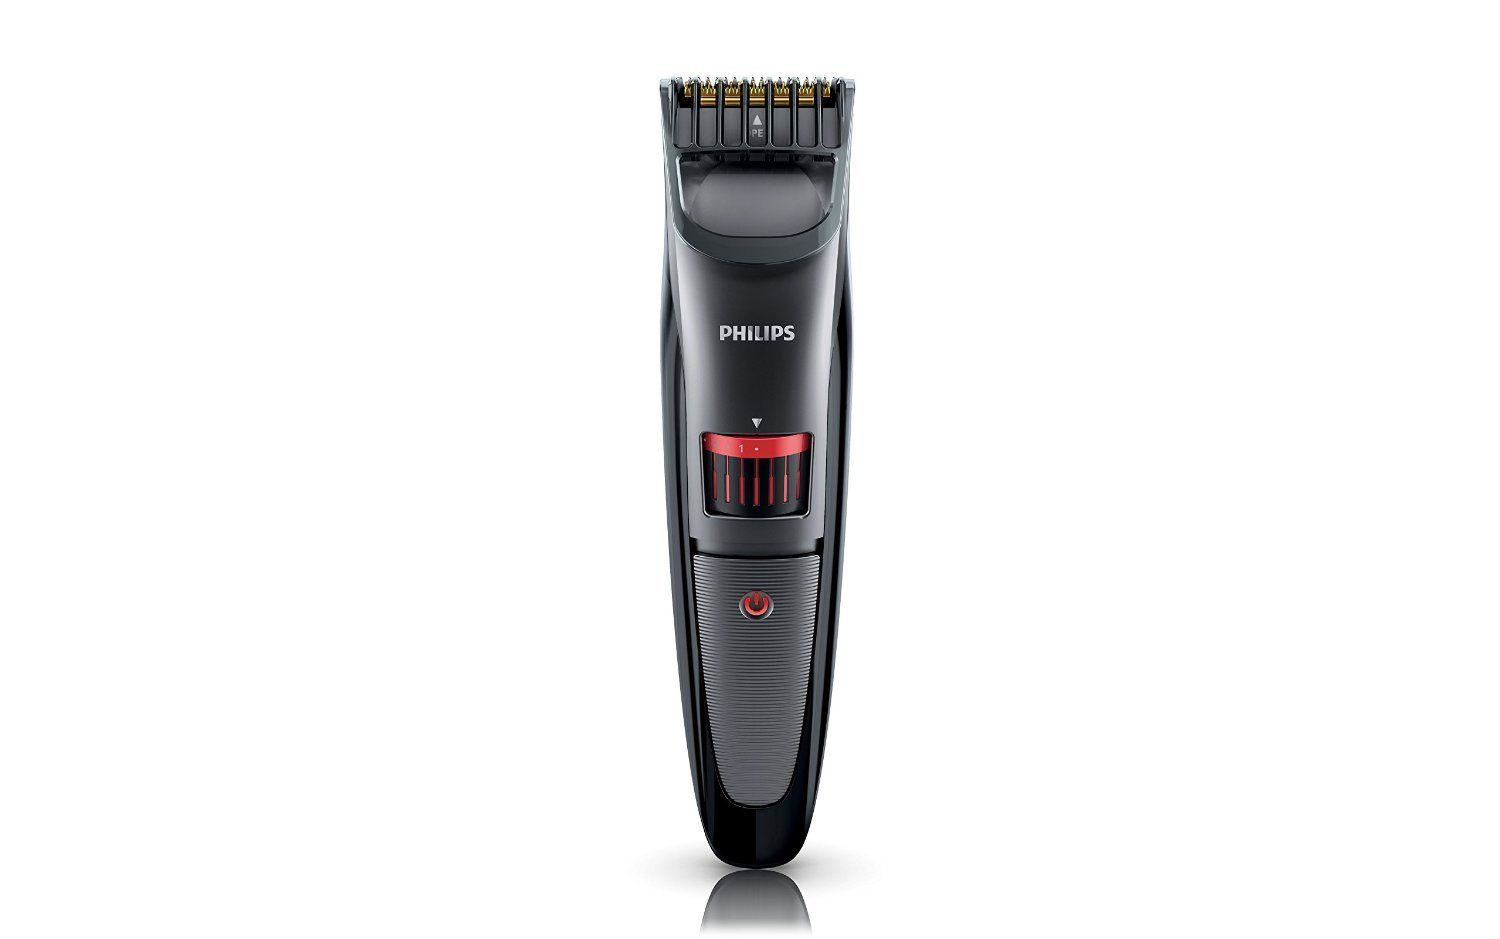 philips qt4005 13 series 3000 cordless beard trimmer shave. Black Bedroom Furniture Sets. Home Design Ideas